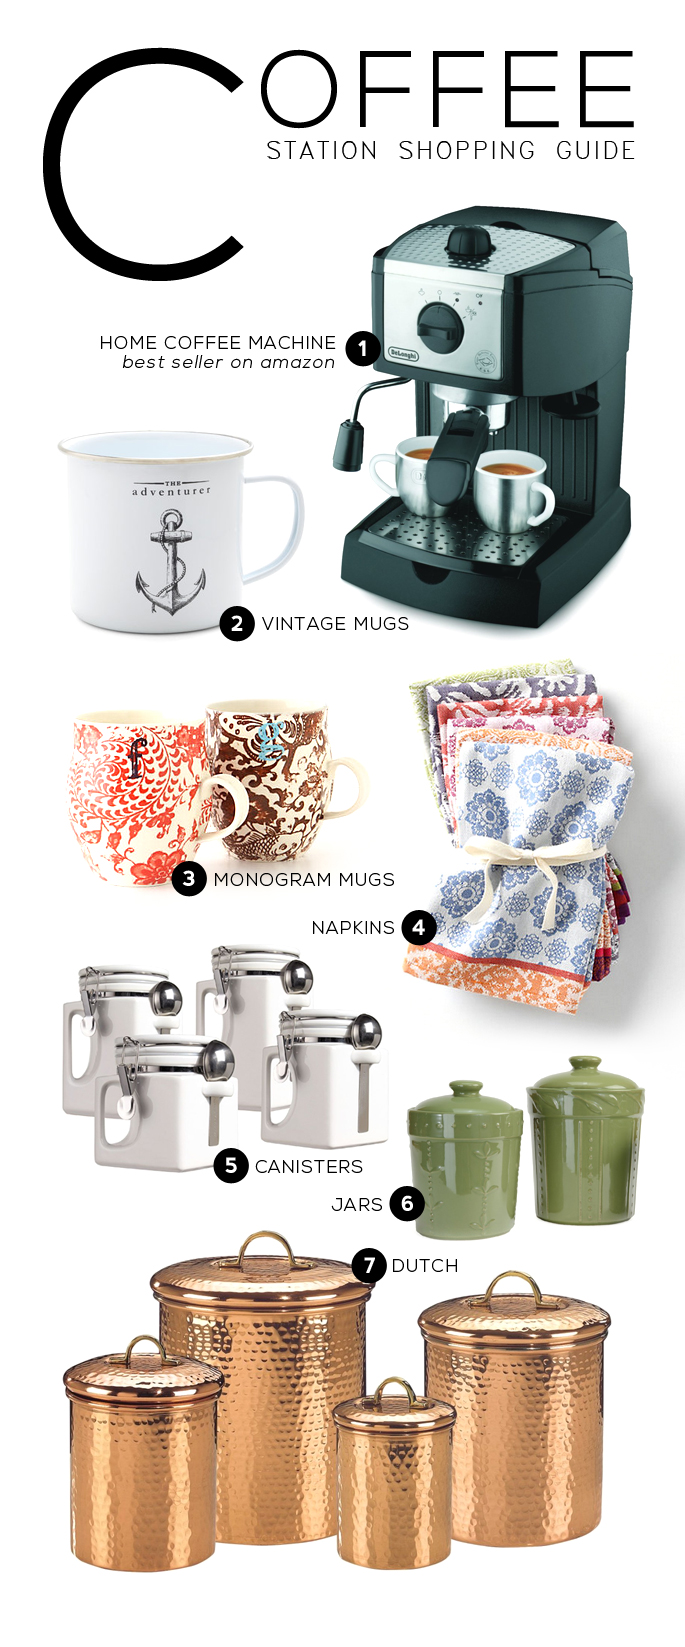 Coffee Station Shopping Guide